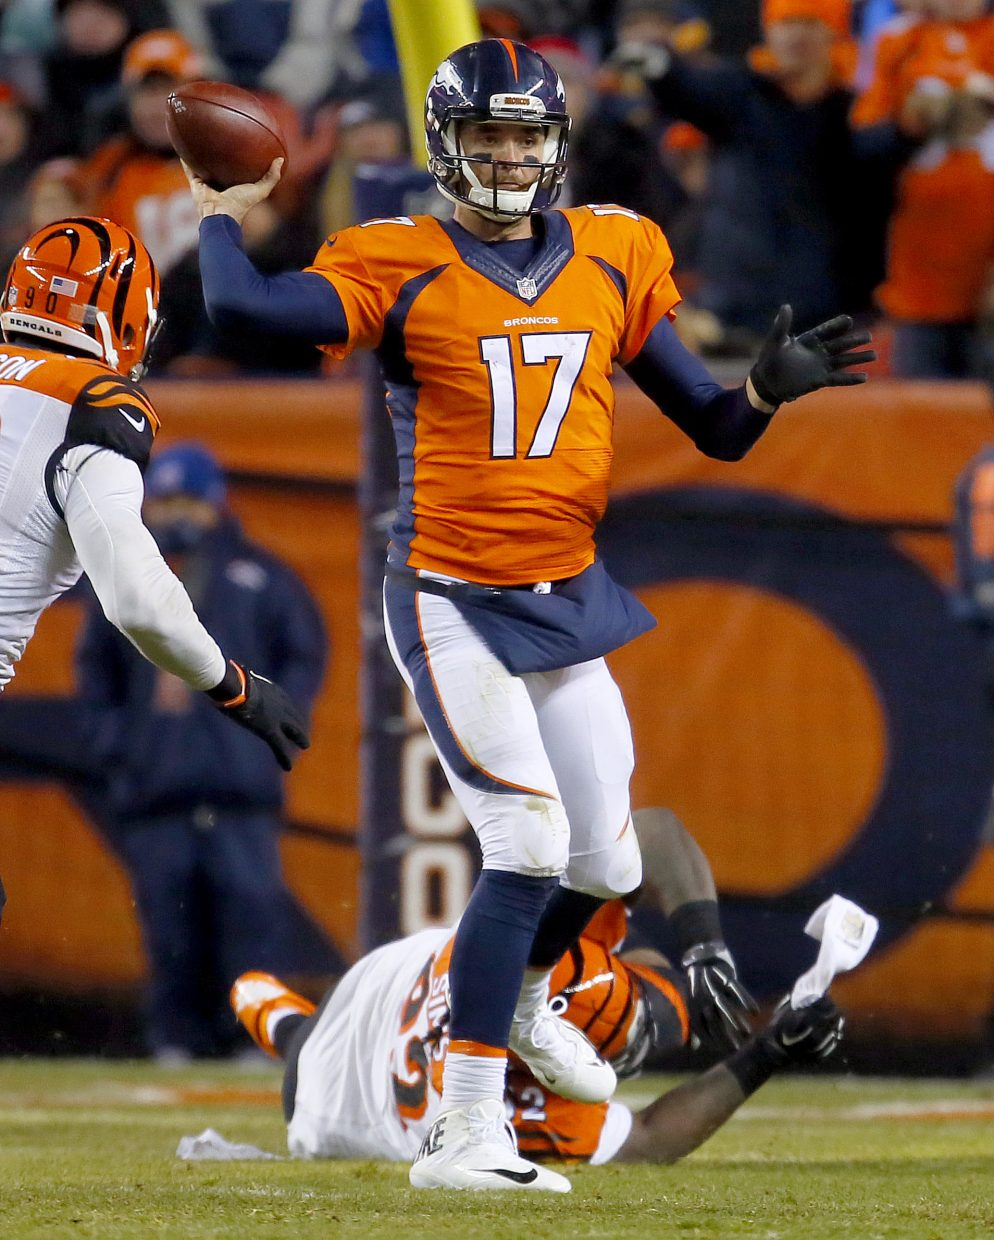 Denver Broncos quarterback Brock Osweiler (17) throws against the Cincinnati Bengals on Dec. 28 in Denver.